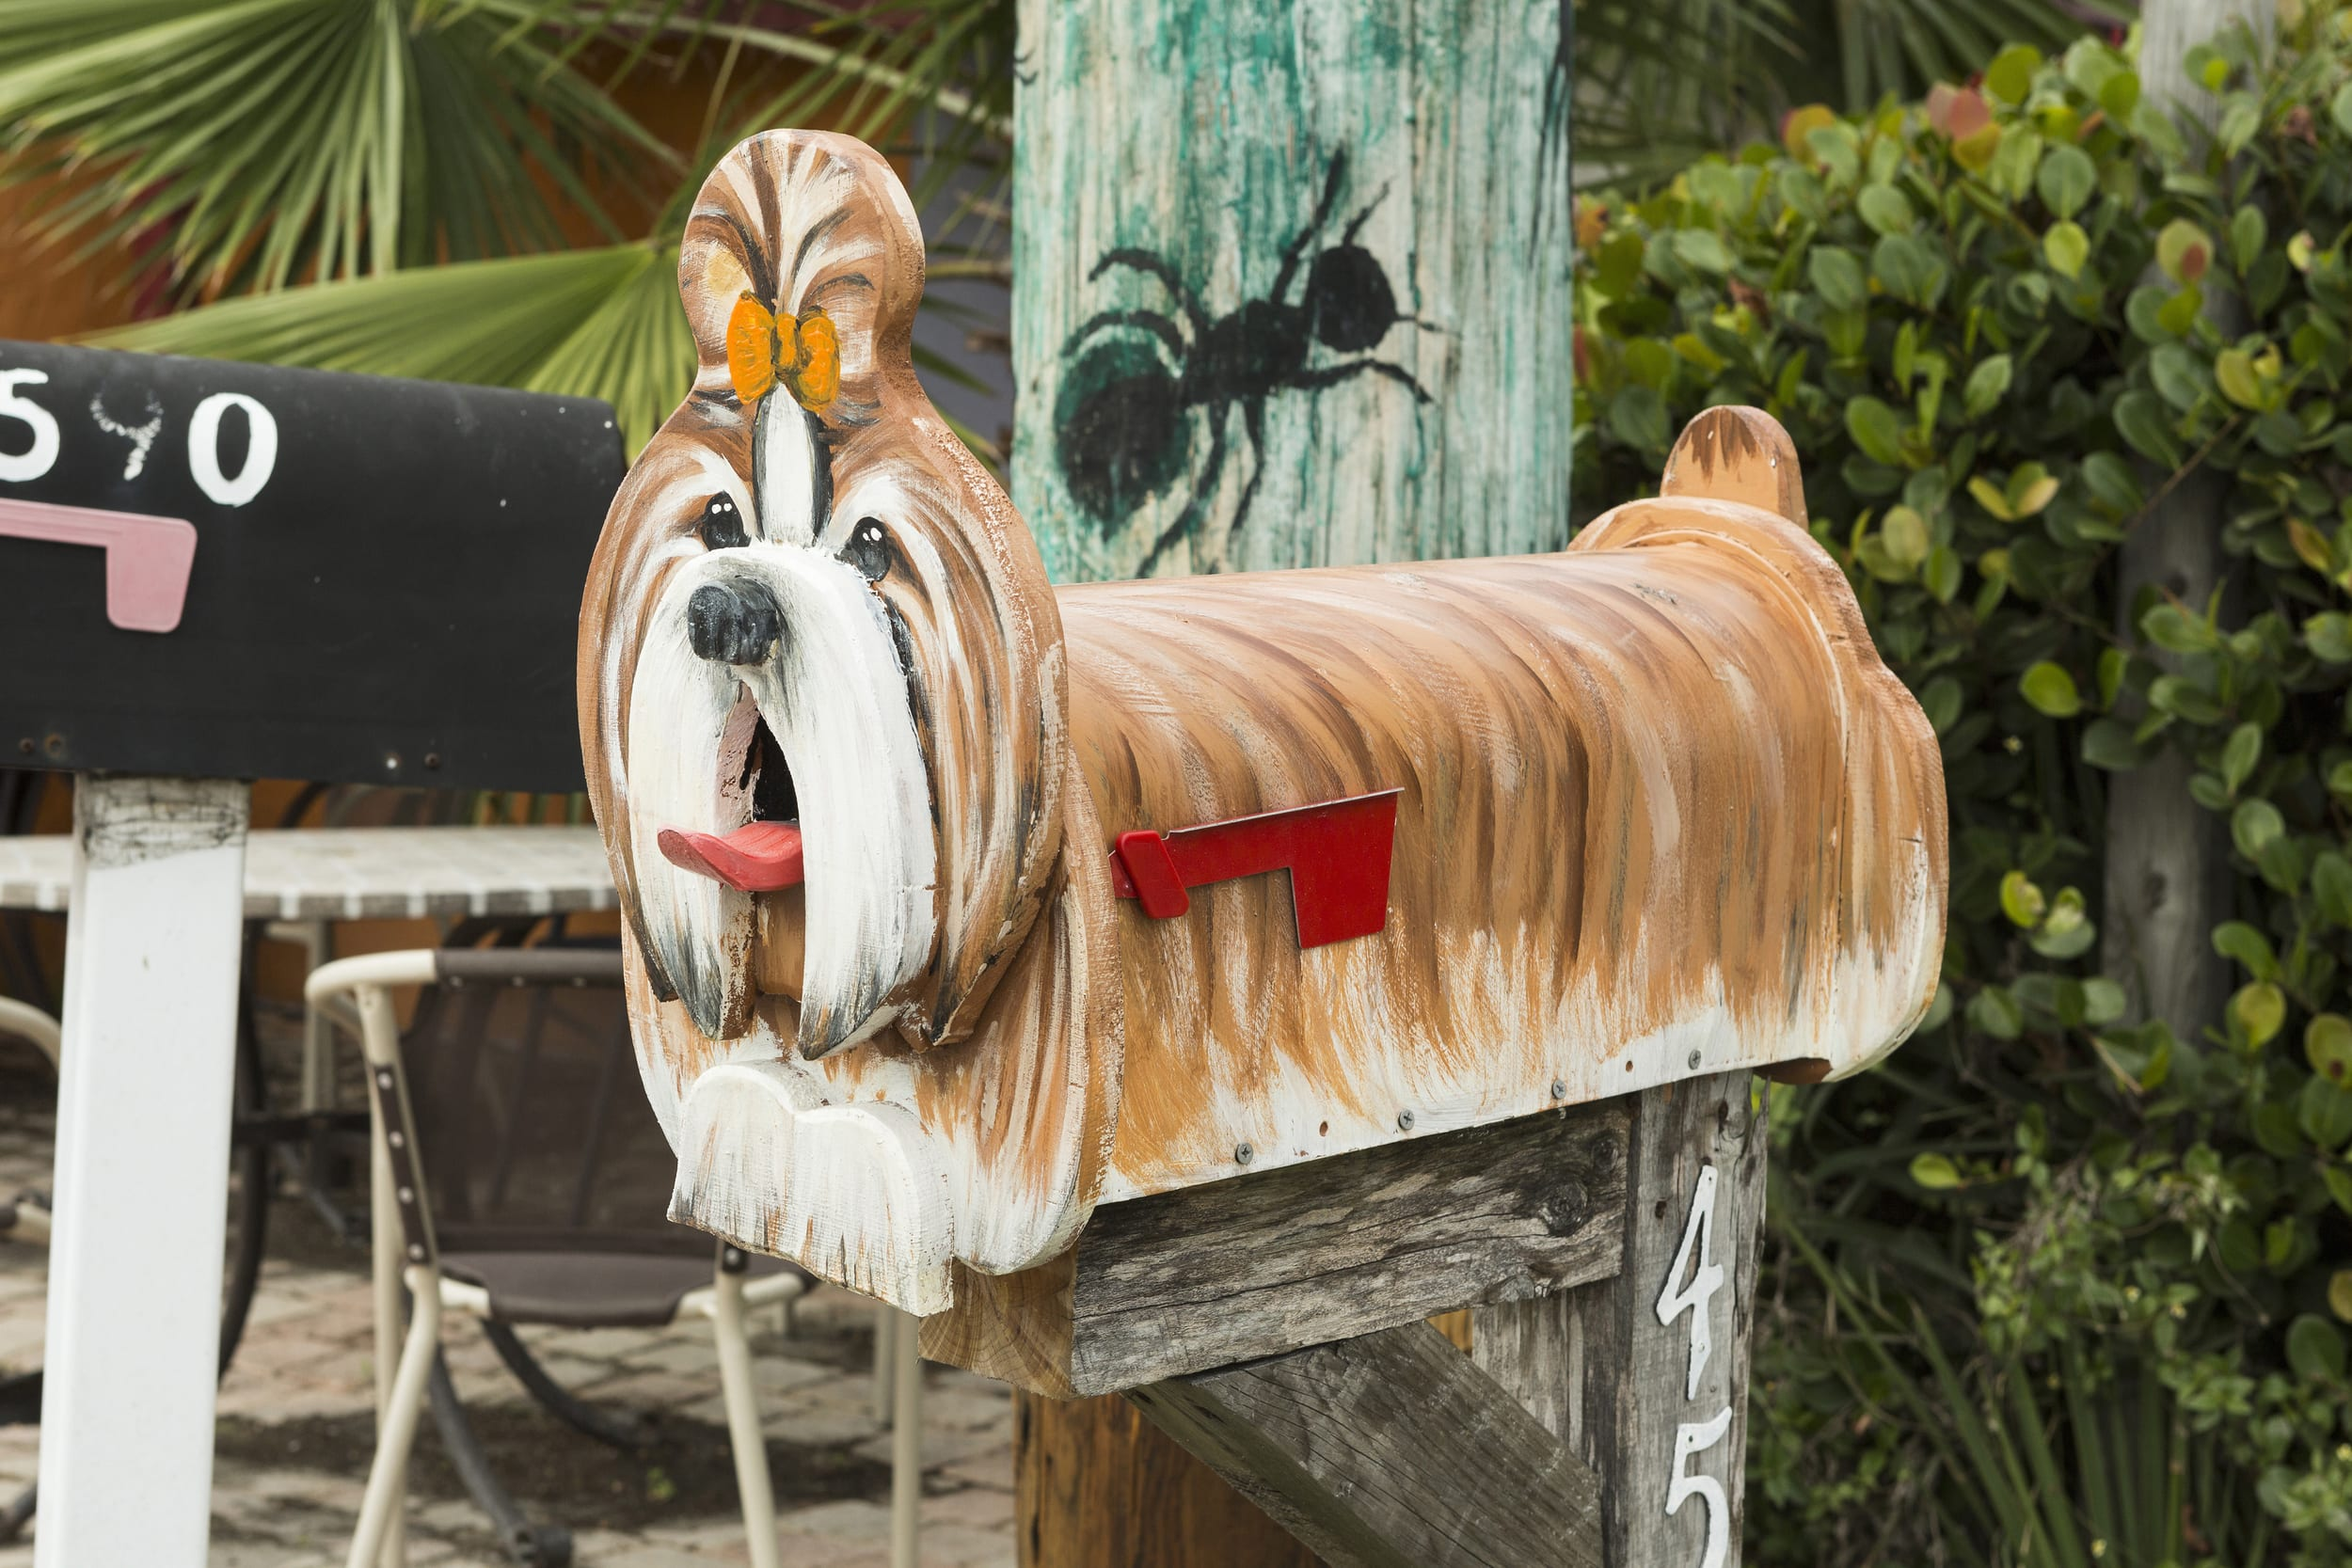 The World's Most Bizarre Mailboxes